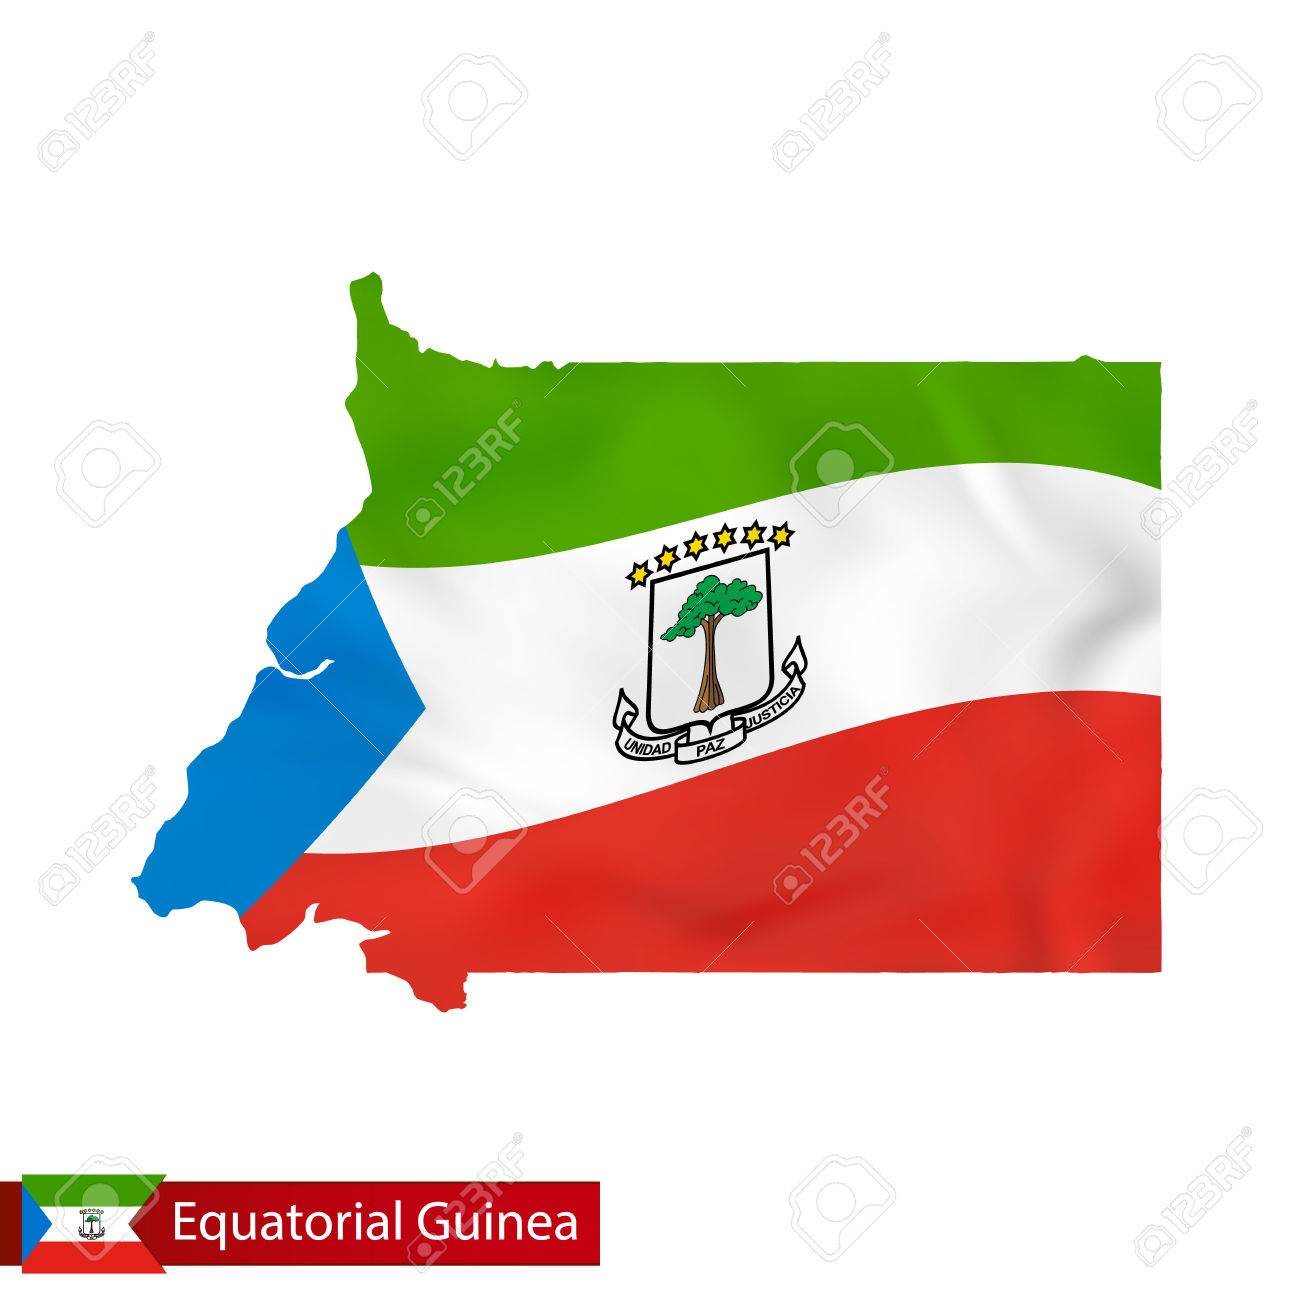 Equatorial Guinea Map With Waving Flag Of Country. Vector ...